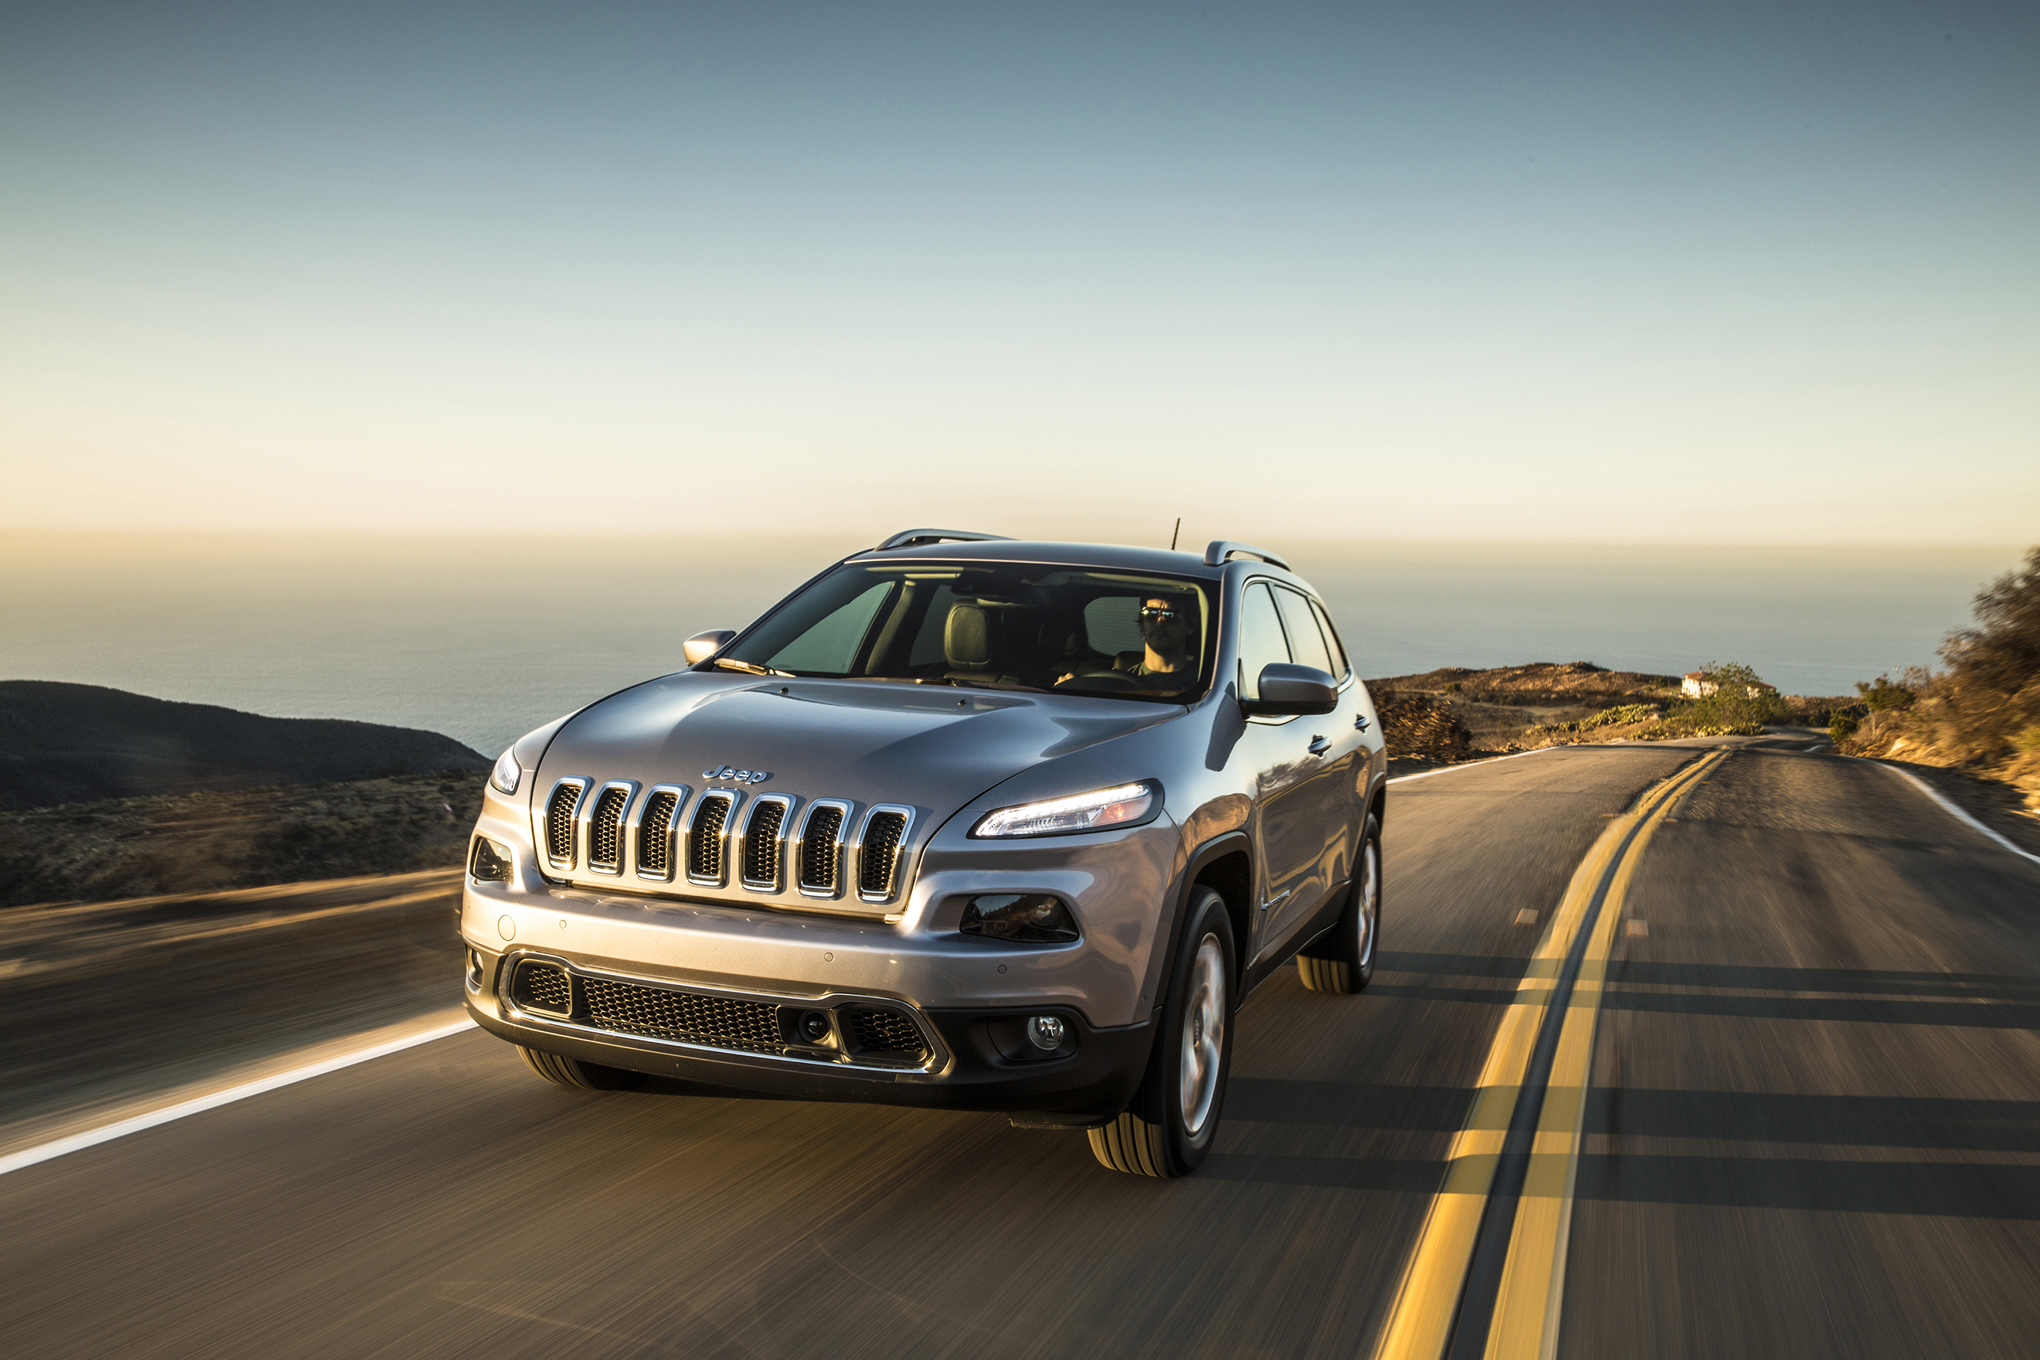 Stop-Start Boosts 2015 Jeep Cherokee V-6 Fuel Economy by up to 2 MPG